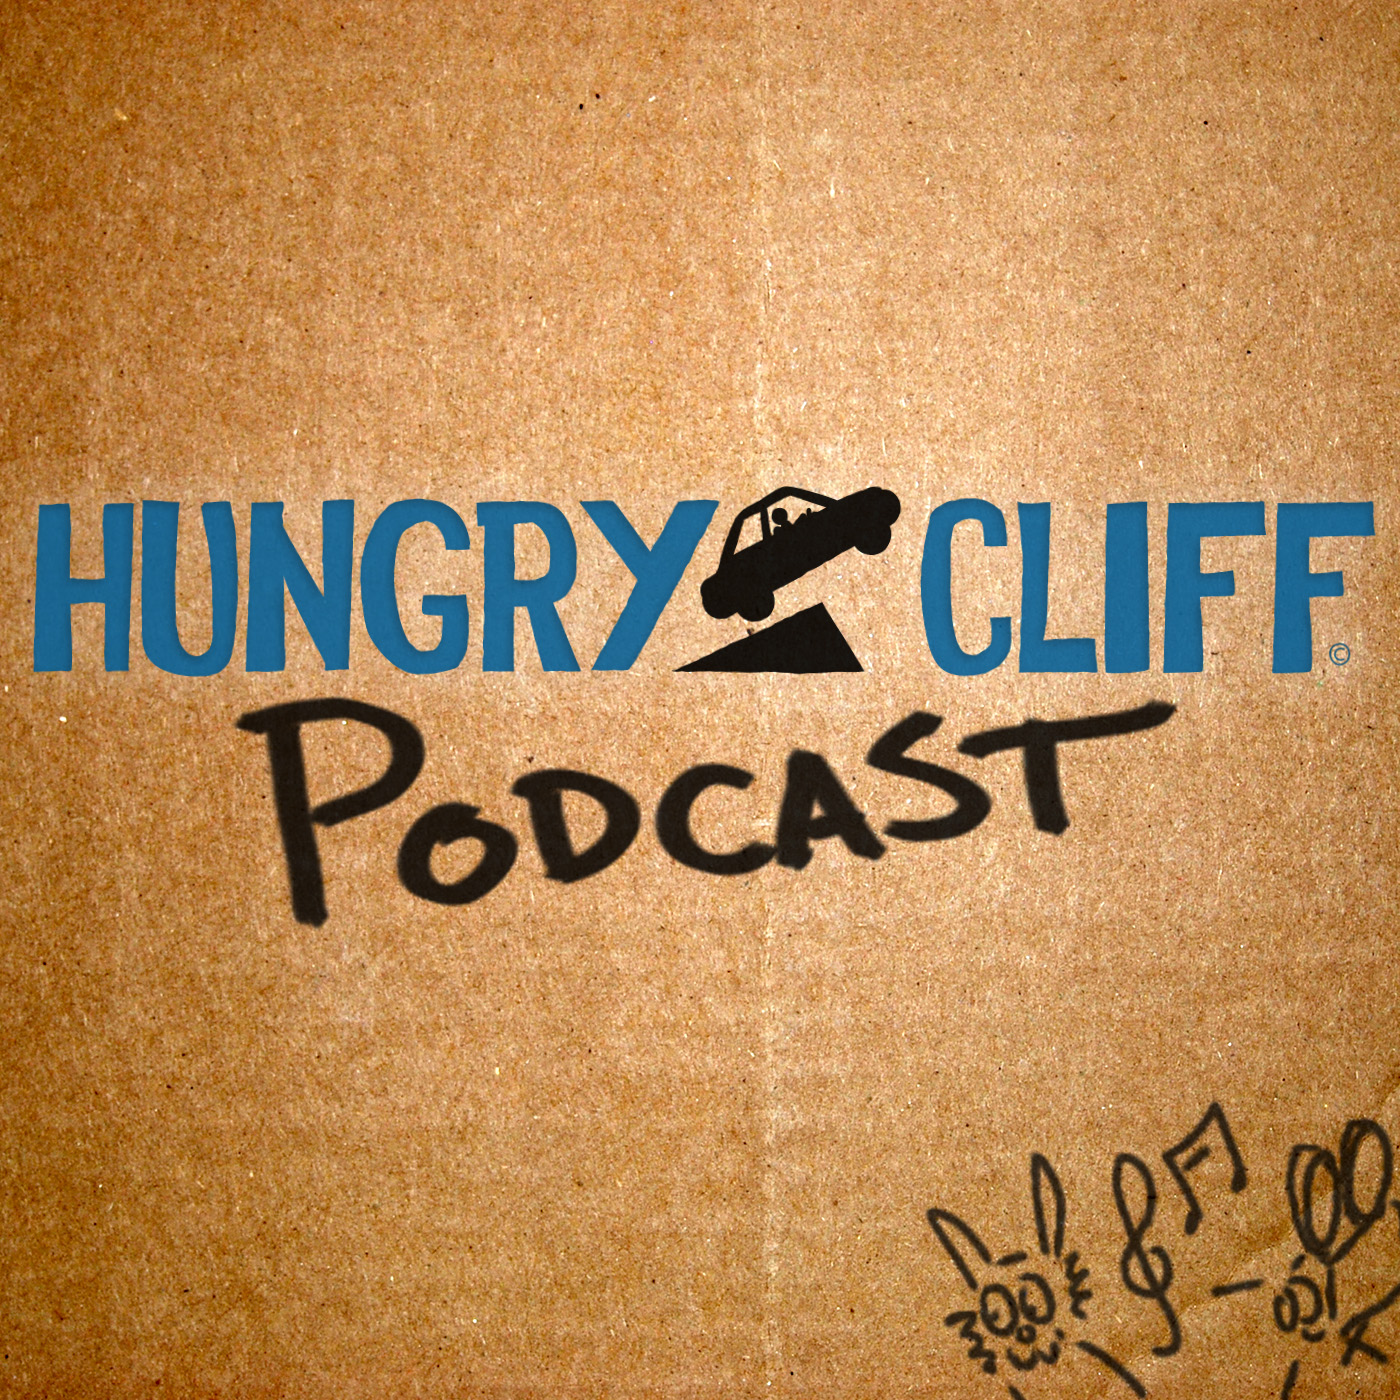 Bits & Pieces: Pedro's Laugh (Excerpt From Hungry Cliff Podcast 39)